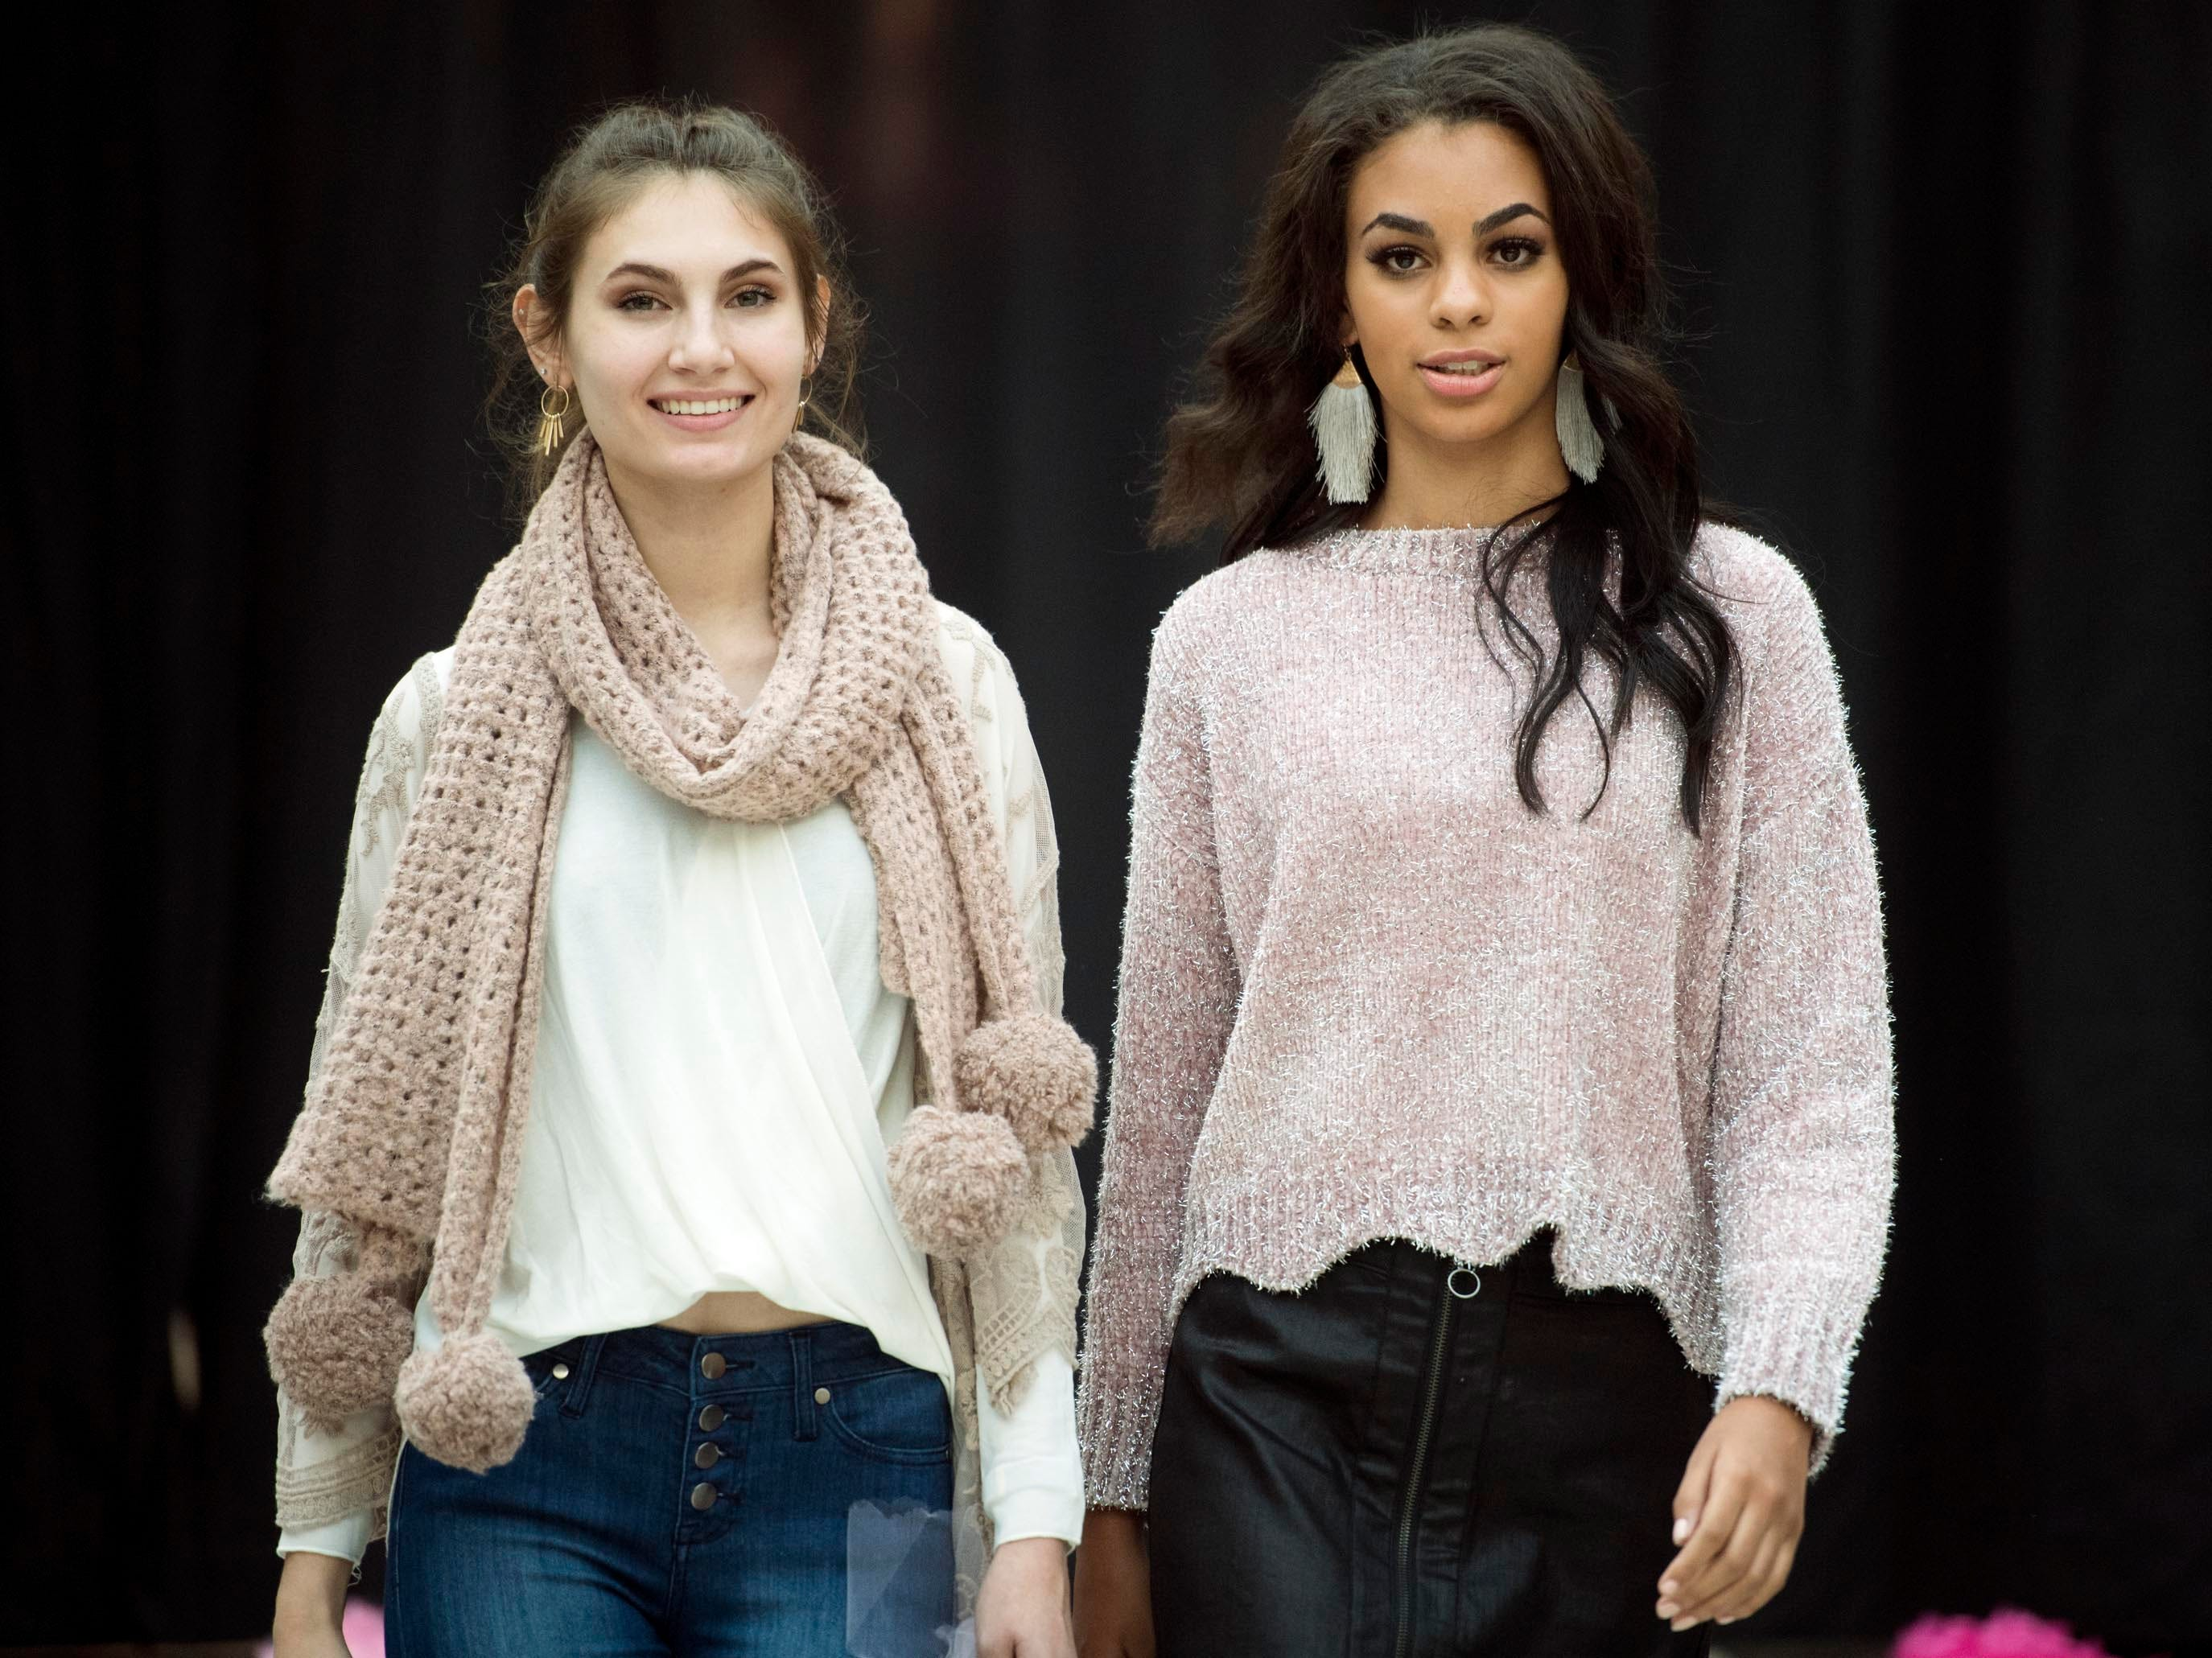 Athena and Emily, models courtesy of West Town Mall Fashion Board and Gate Model & Talent in clothing from Atar'd State during a fashion show coordinated by Claire Queisser Runway Events for West Town Mall's annual Survivor Fashion Show on Monday, October 8, 2018 to benefit Susan G. Komen.